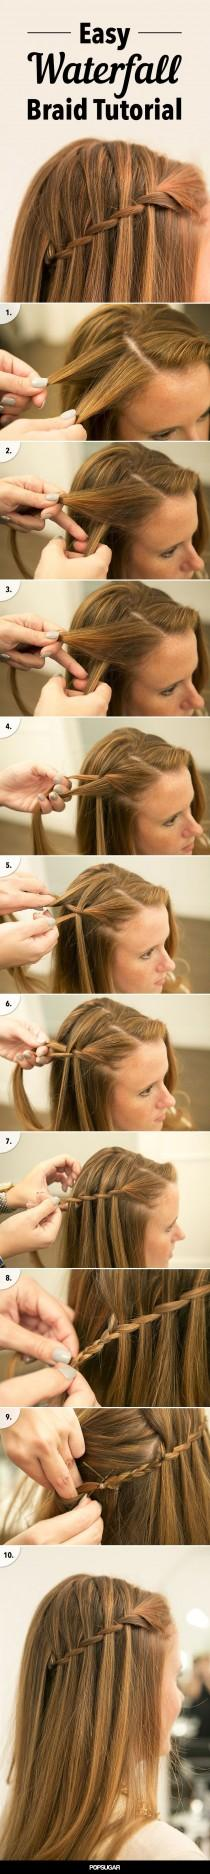 wedding photo - Waterfall Braid DIY